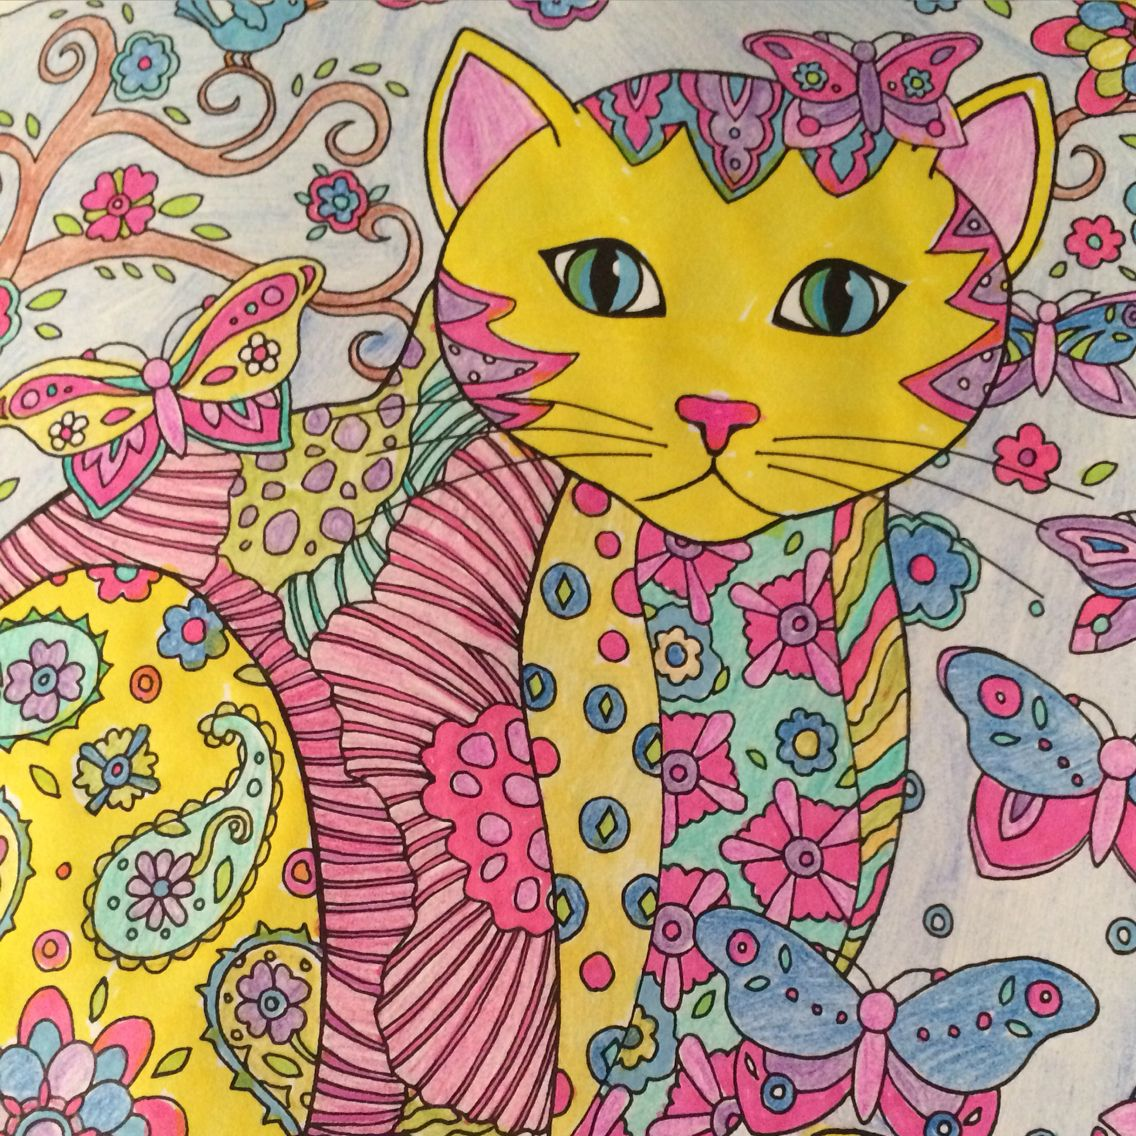 Color cats like - Cat Coloring Pages Free Sample Join Fb Grown Up Coloring Group